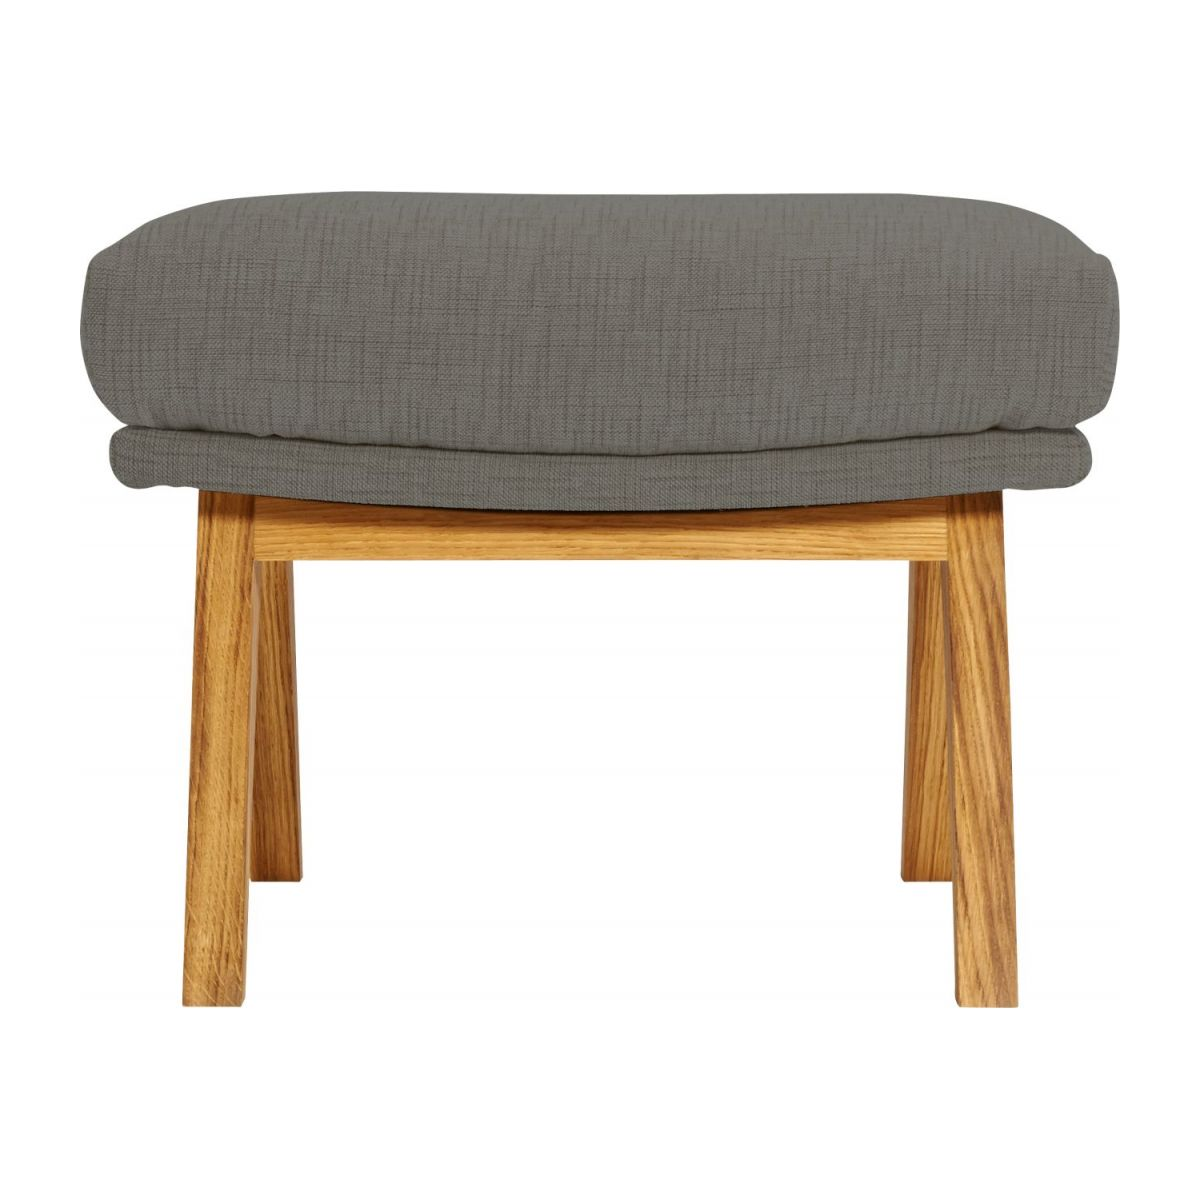 Footstool in Ancio fabric, river rock with oak legs n°3